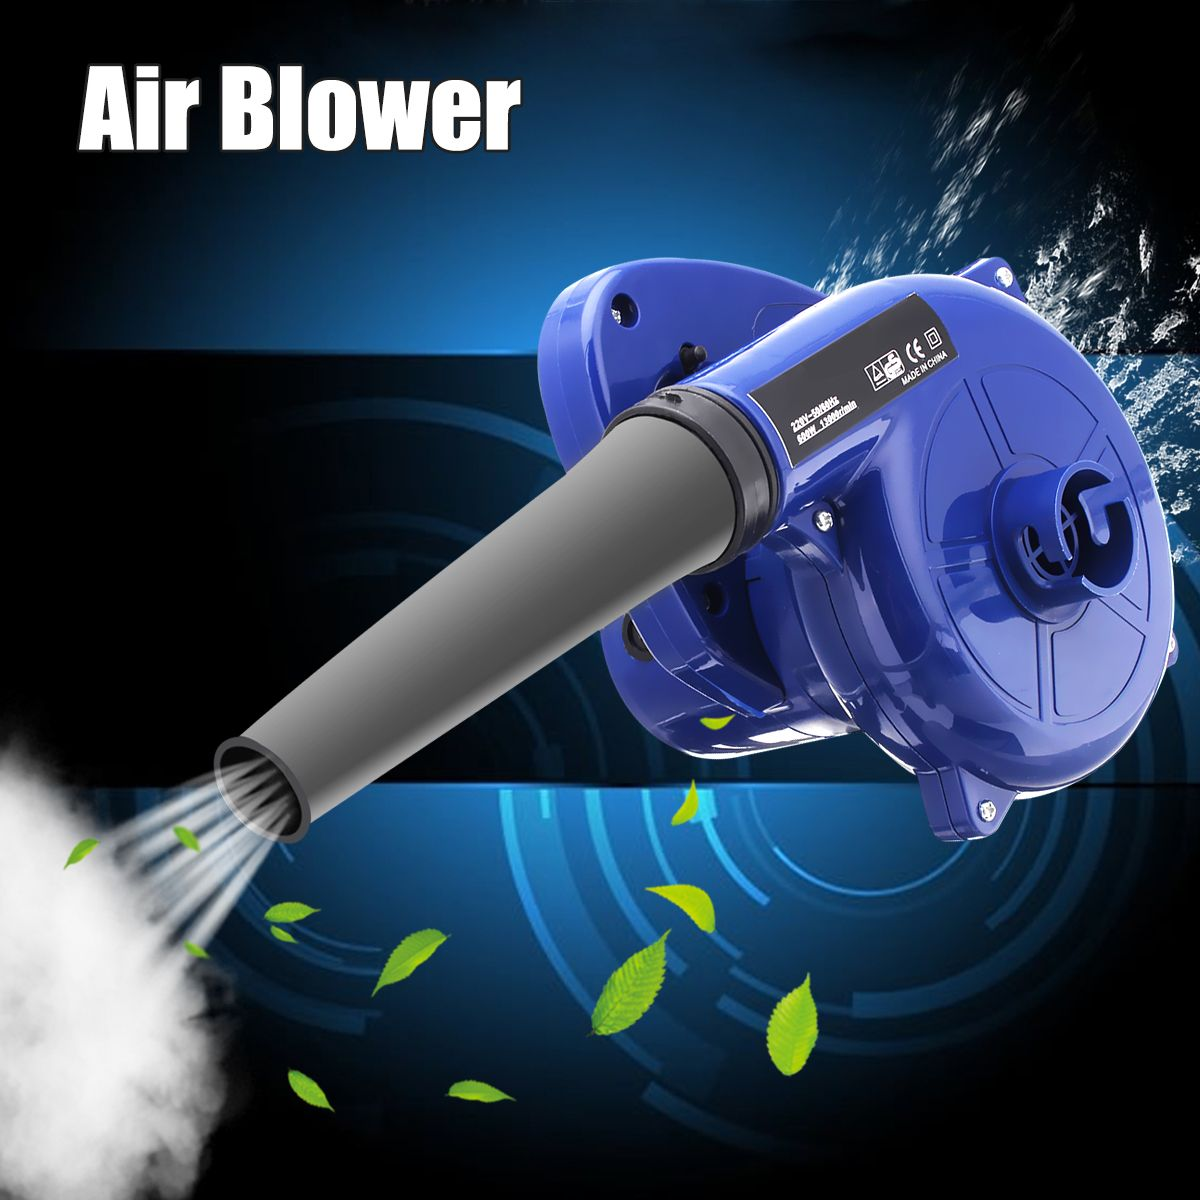 600W 220V Electric Handheld Air Blower Computer Dust <font><b>Collector</b></font> Fan Vacuum Cleaner Dust Collecting Leaf Car Dust Blowing Remover